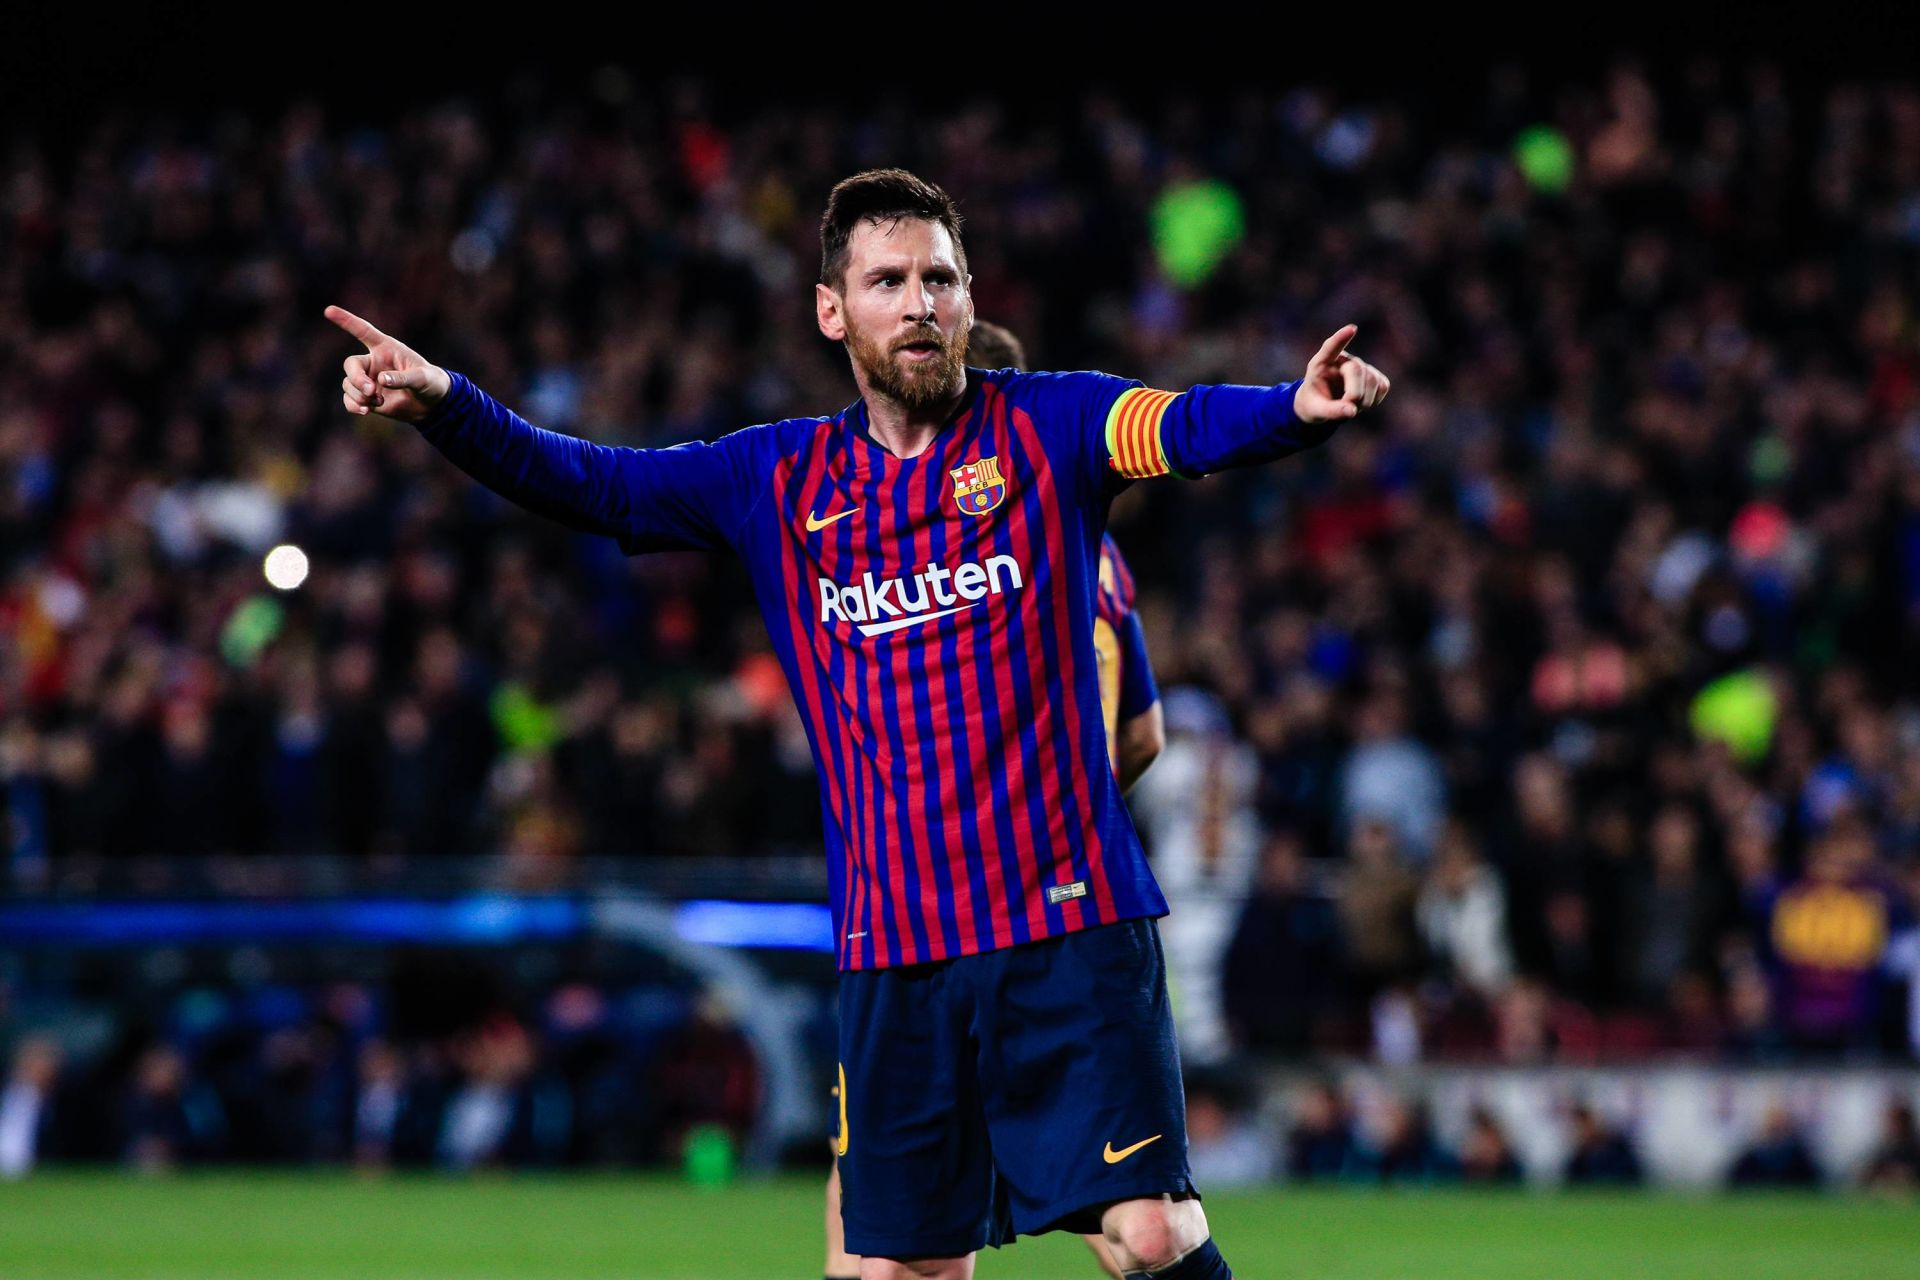 May 1, 2019 - Barcelona, BARCELONA, Spain - 10 Leo Messi of FC Barcelona celebrating his goal during the UEFA Champions League first leg match of Semi final between FC Barcelona and Liverpool FC in Camp Nou Stadium in Barcelona 01 of May of 2019, Spain. (Credit Image: © AFP7 via ZUMA Wire) FOT.ZUMA/NEWSPIX.PL POLAND ONLY!!! --- Newspix.pl *** Local Caption *** www.newspix.pl  mail us: info@newspix.pl call us: 0048 022 23 22 222 --- Polish Picture Agency by Ringier Axel Springer Poland